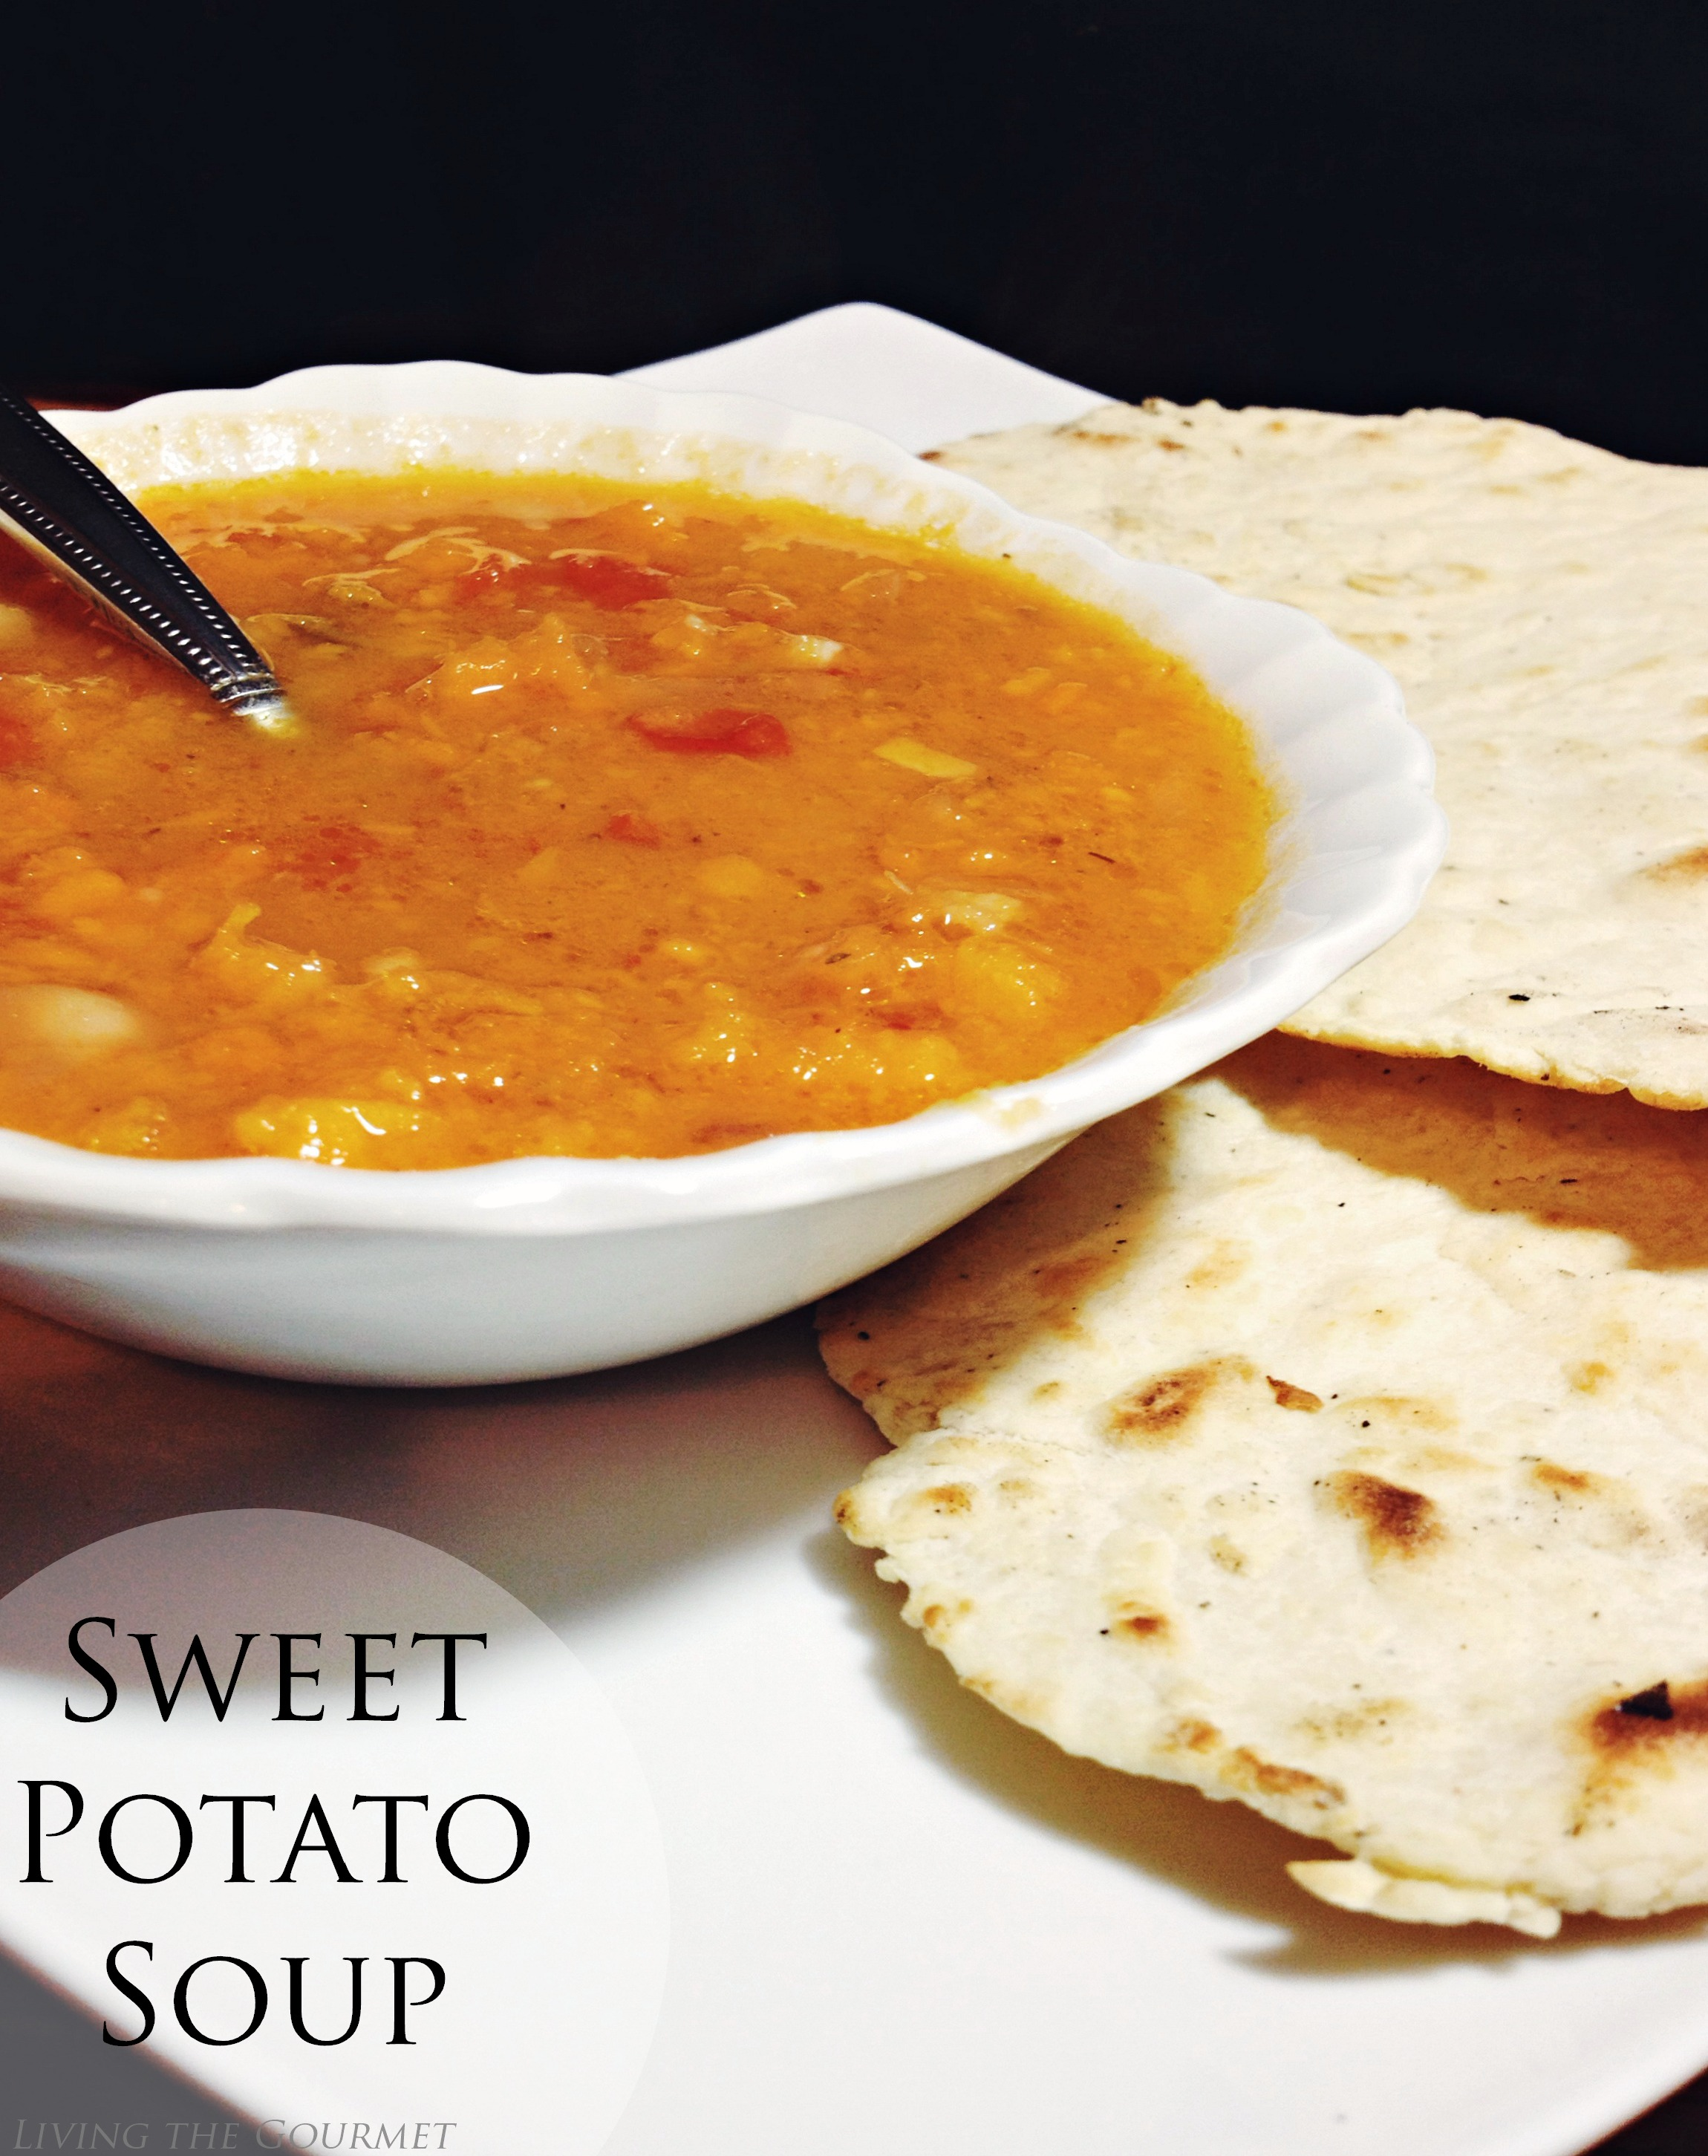 Living the Gourmet:  Sweet Potato Soup